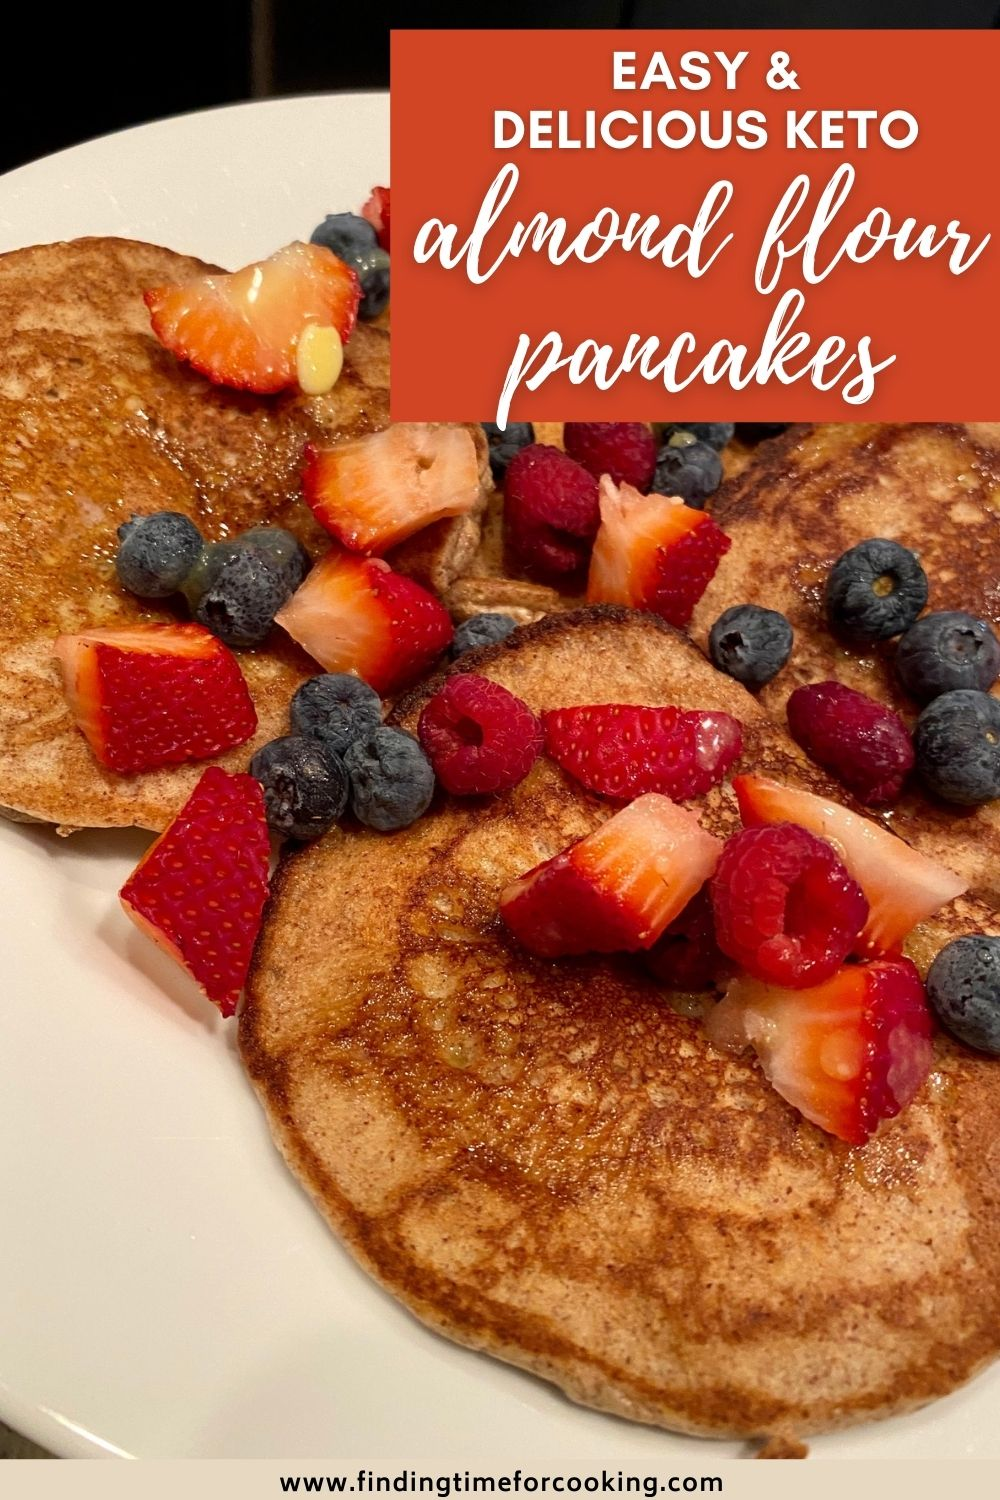 Easy & Delicious Almond Flour Pancakes | These keto pancakes are so easy & perfect for any morning. Naturally gluten-free pancake recipe that's low carb, no weird ingredients, and packed full of protein and healthy fats. Easy keto breakfast or low carb breakfast recipes you'll love, gluten-free breakfast recipe that's so easy to make. #keto #lowcarb #almondflour #pancakes #glutenfree #gf